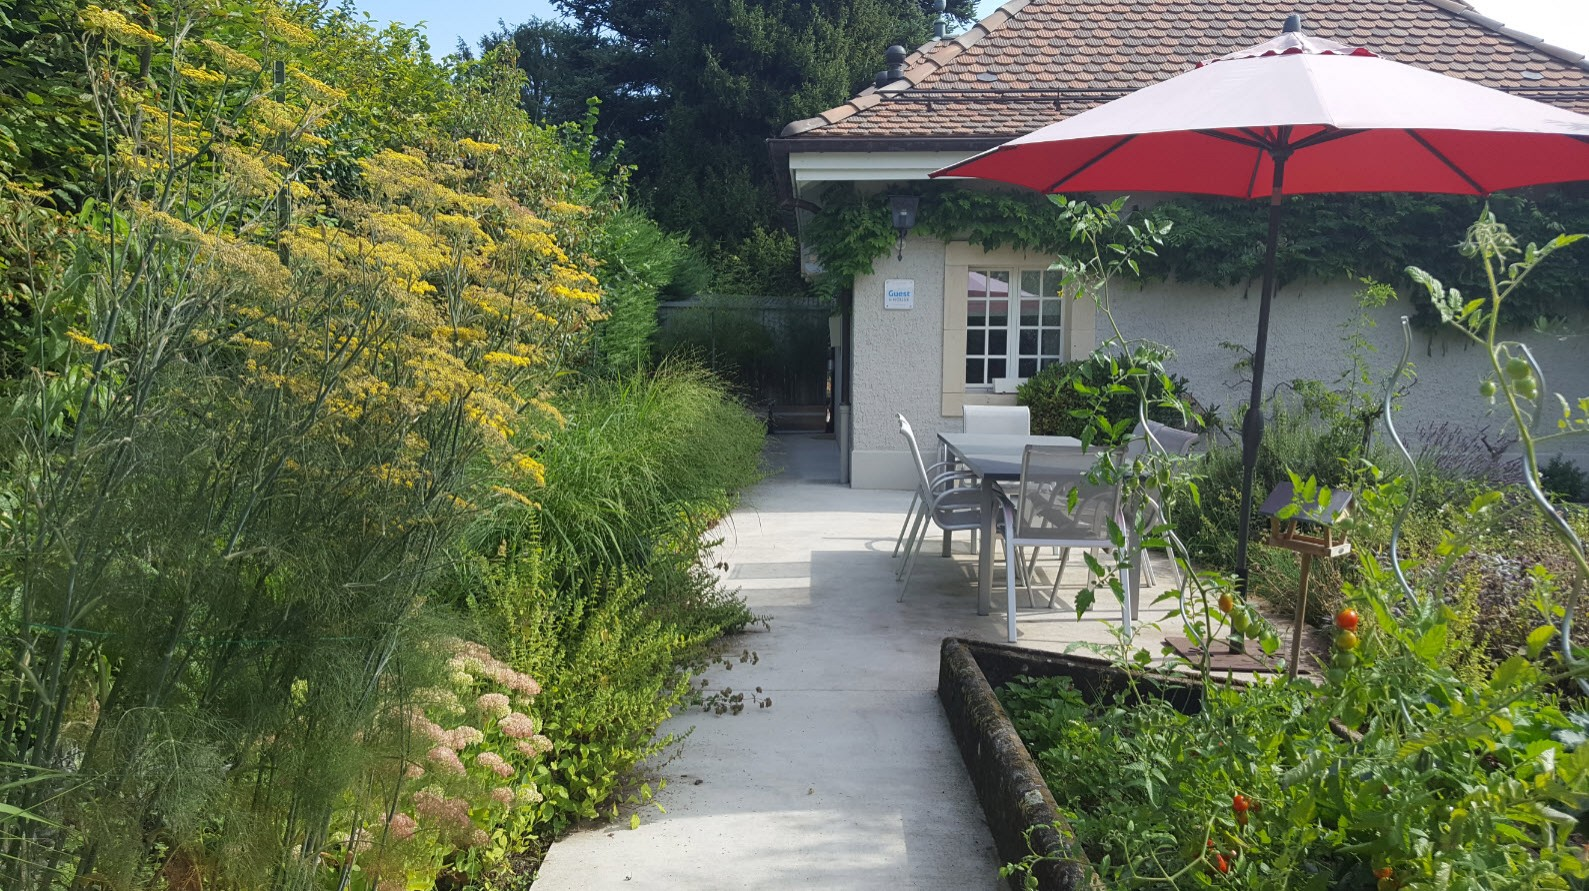 Jardin bed and breakfast Suisse